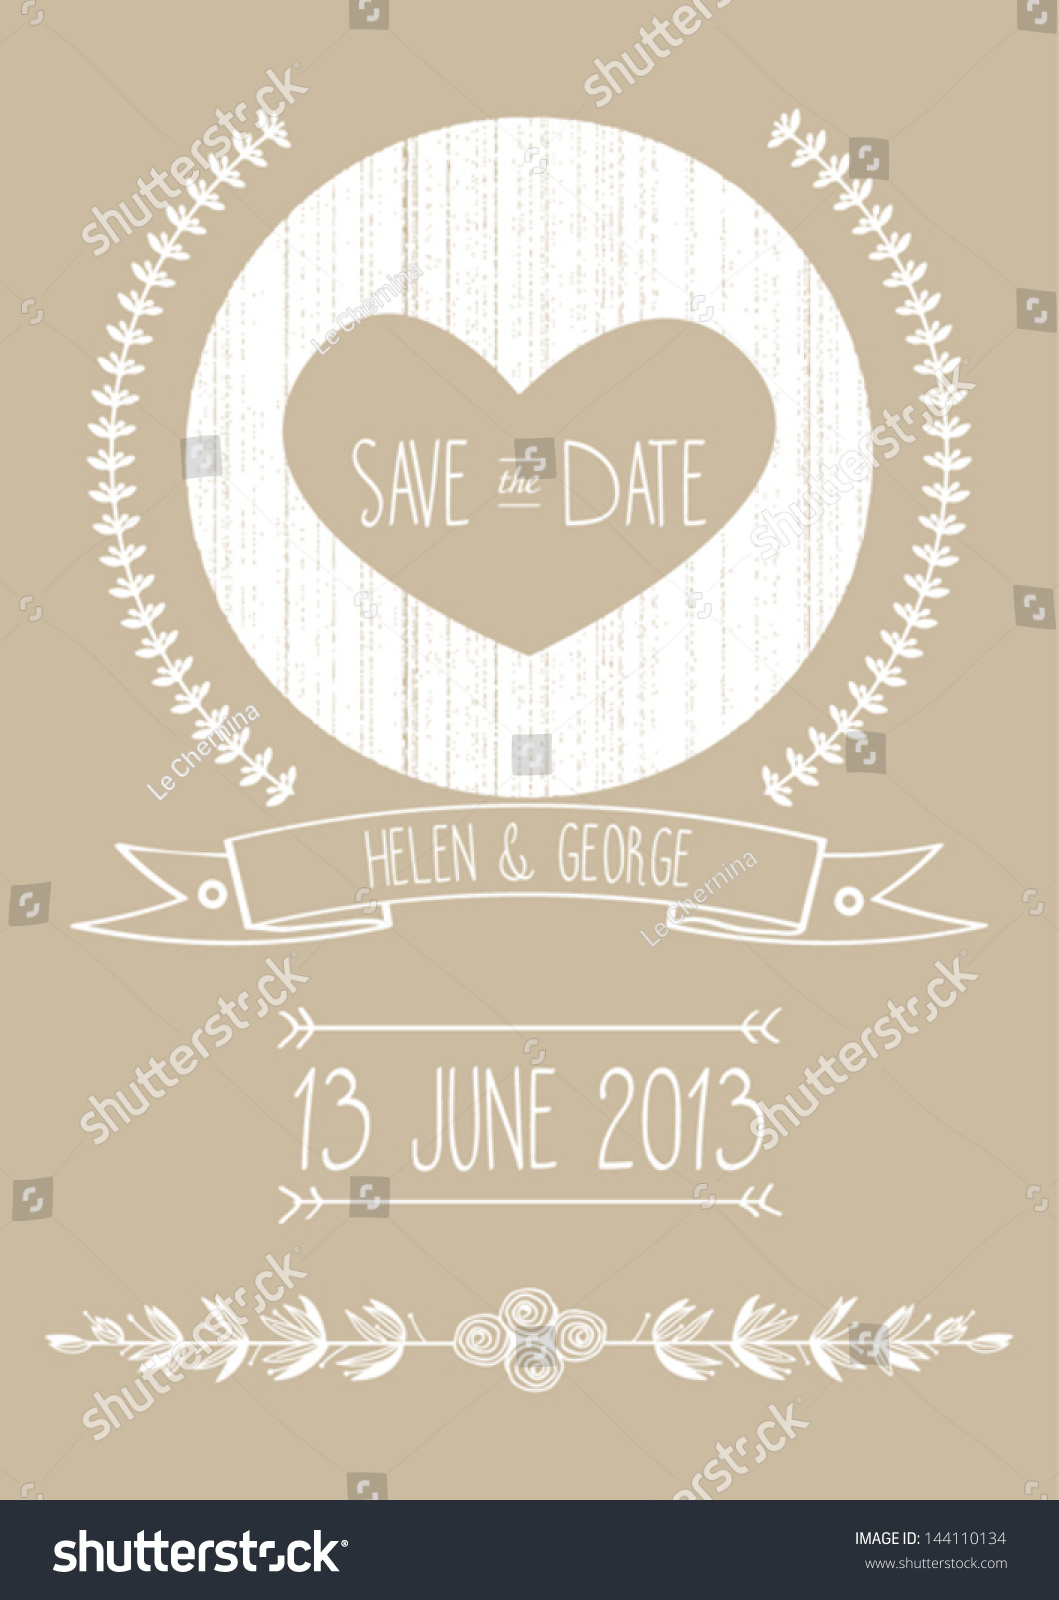 Save Date Wedding Invitation Template Vector Vector – Save the Date Template